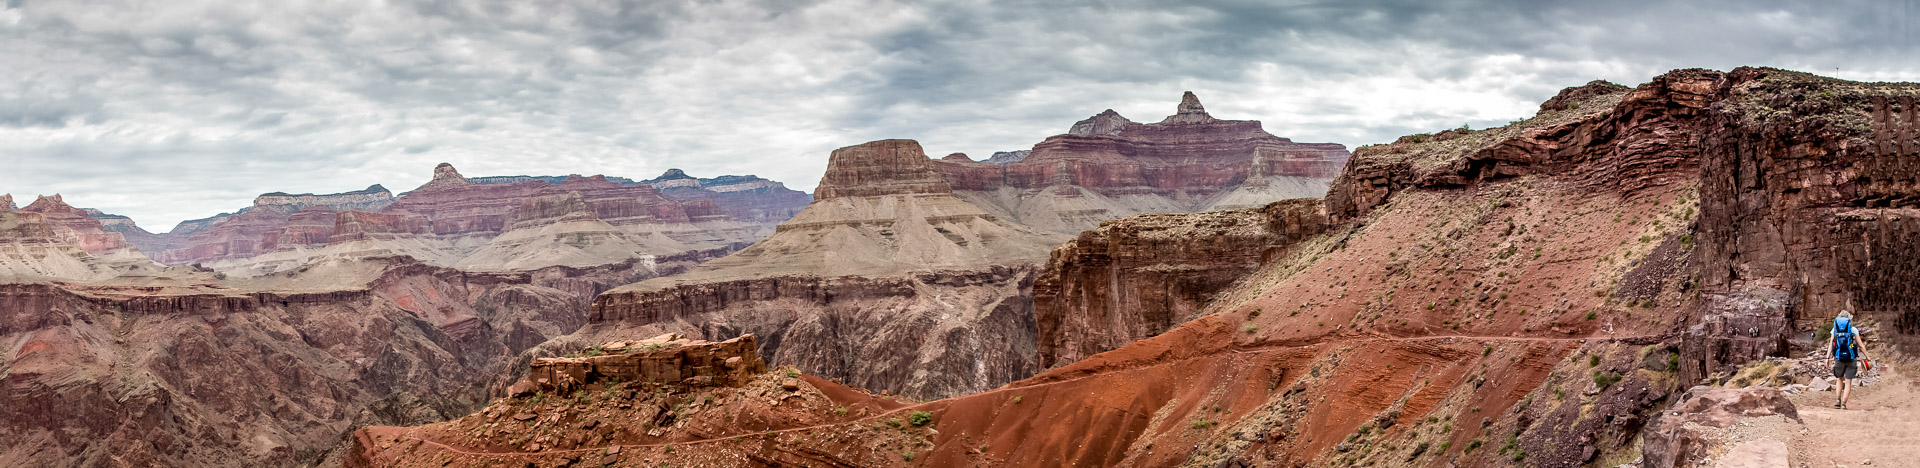 29.7. South Kaibab Trail